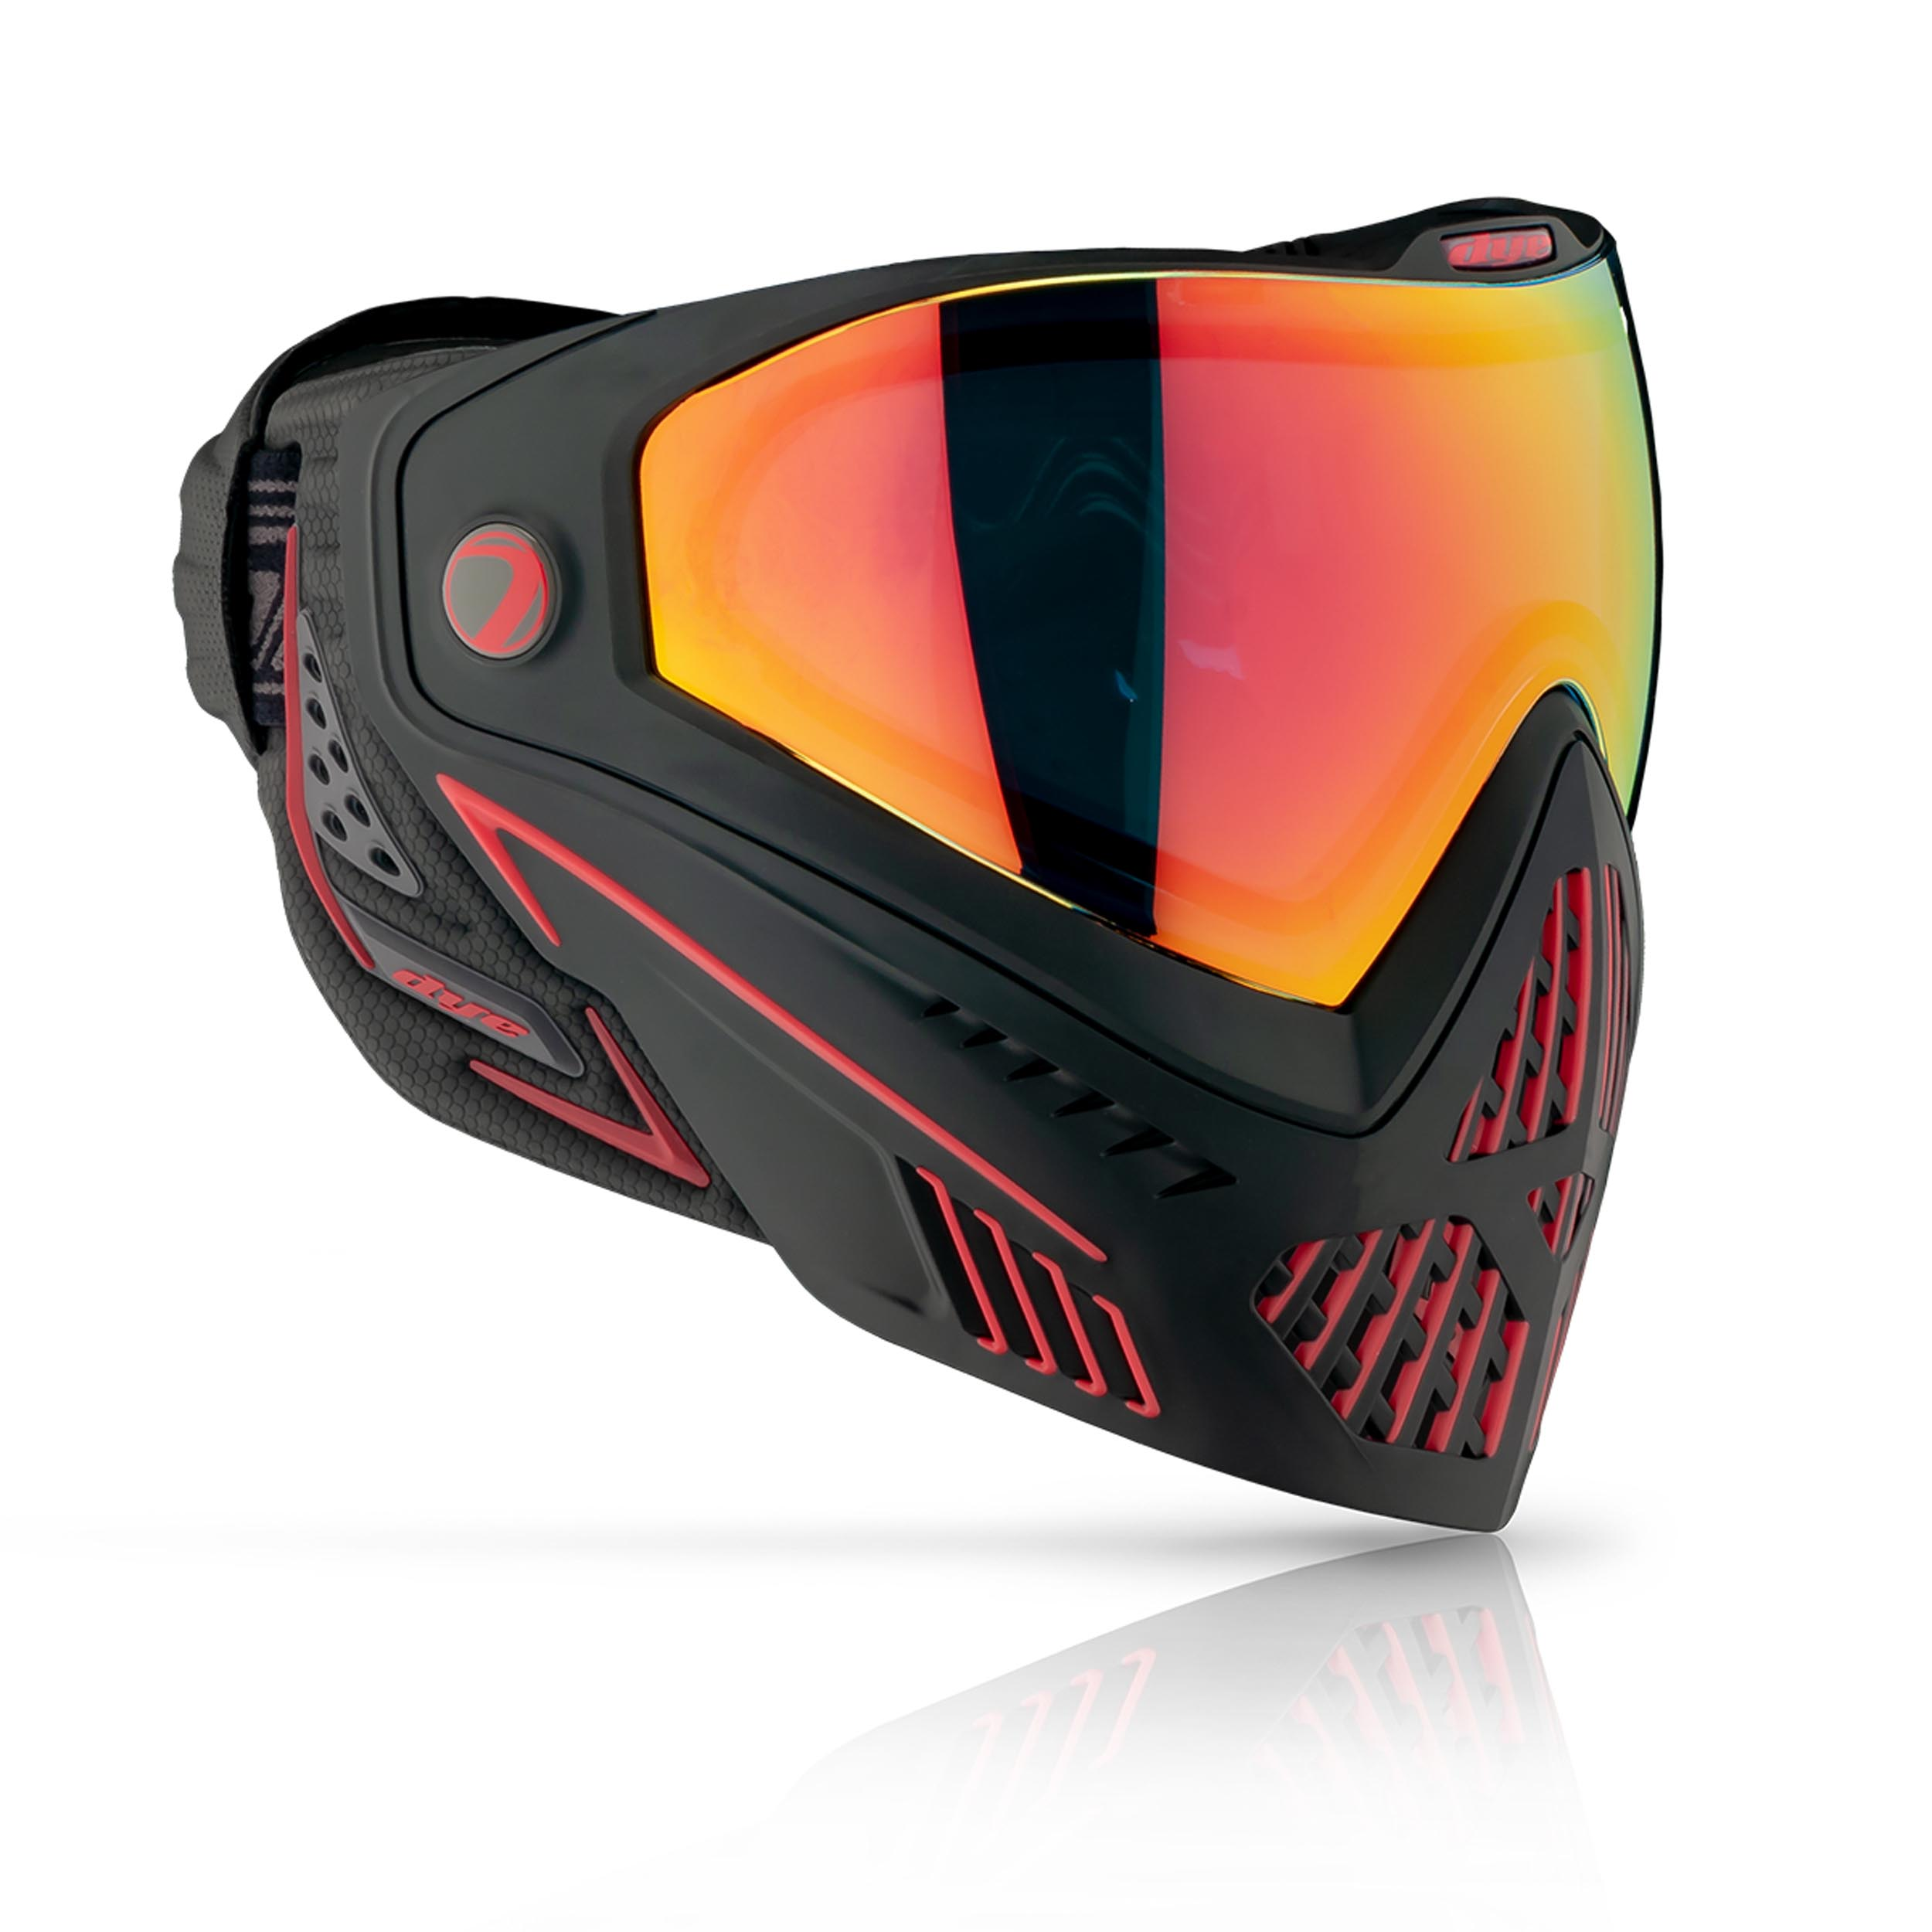 MAS471-1 Dye I5 thermal Fire Black Red 2.0 - MAS471